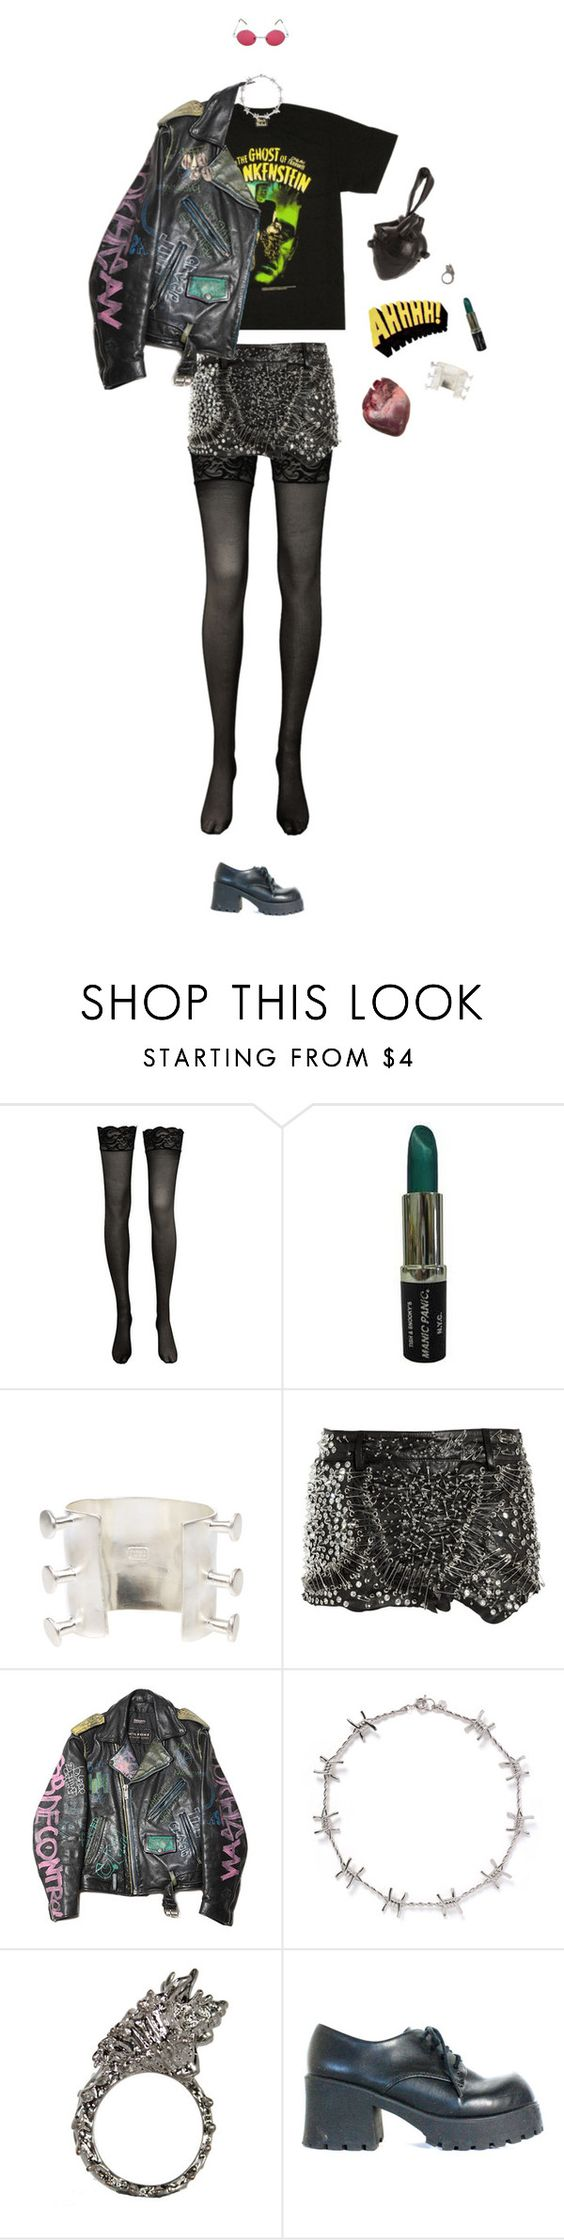 """AHHHHH!"" by lucyh2204 ❤ liked on Polyvore featuring Pamela Love, Natalia Brilli, Balmain and Alexander McQueen"